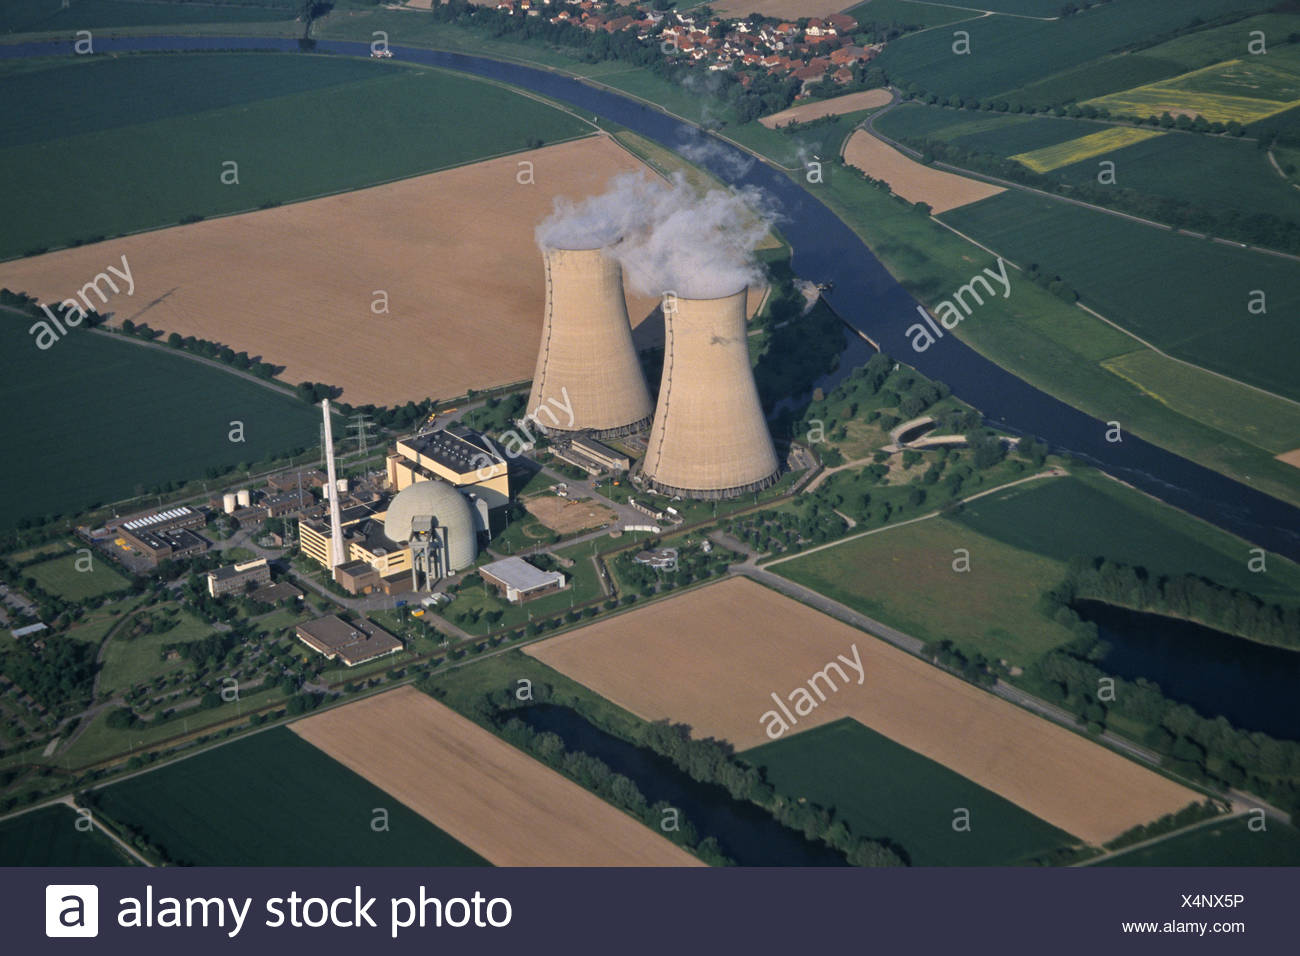 aerial photo nuclear power plant Grohnde in Lower Saxony, Germany - Stock Image